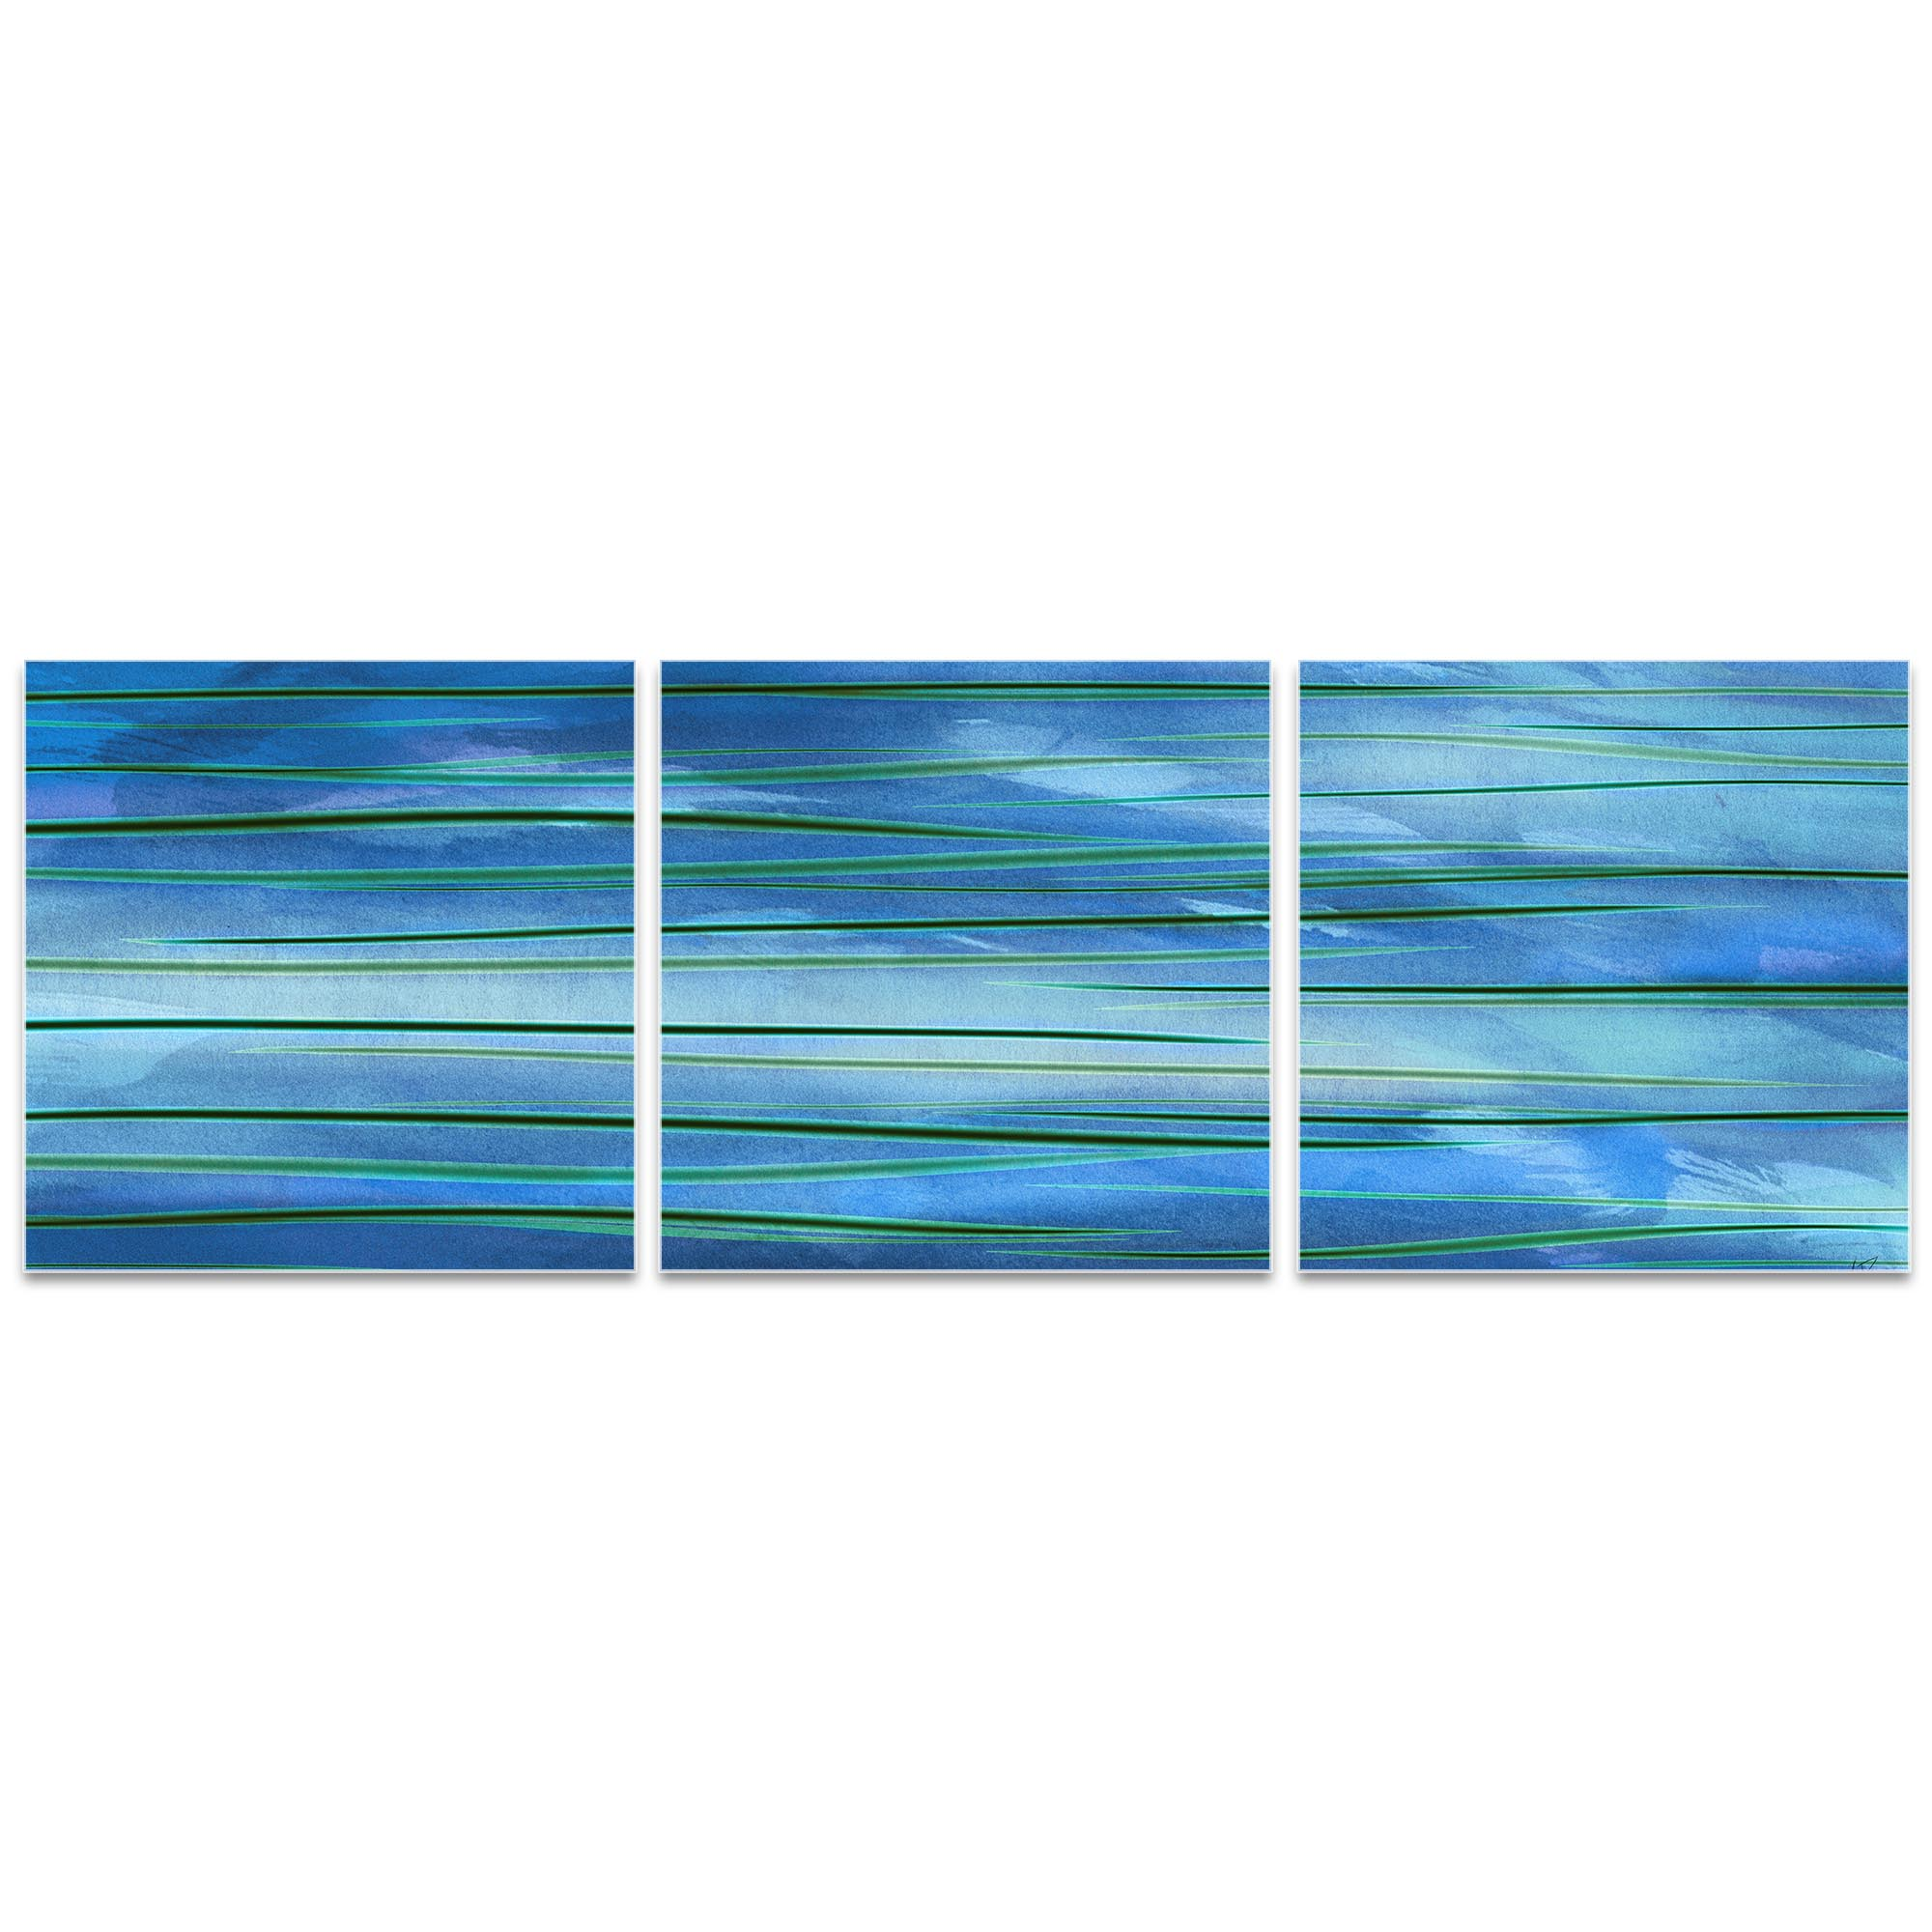 Ocean View Triptych 38x12in. Metal or Acrylic Abstract Decor - Image 2